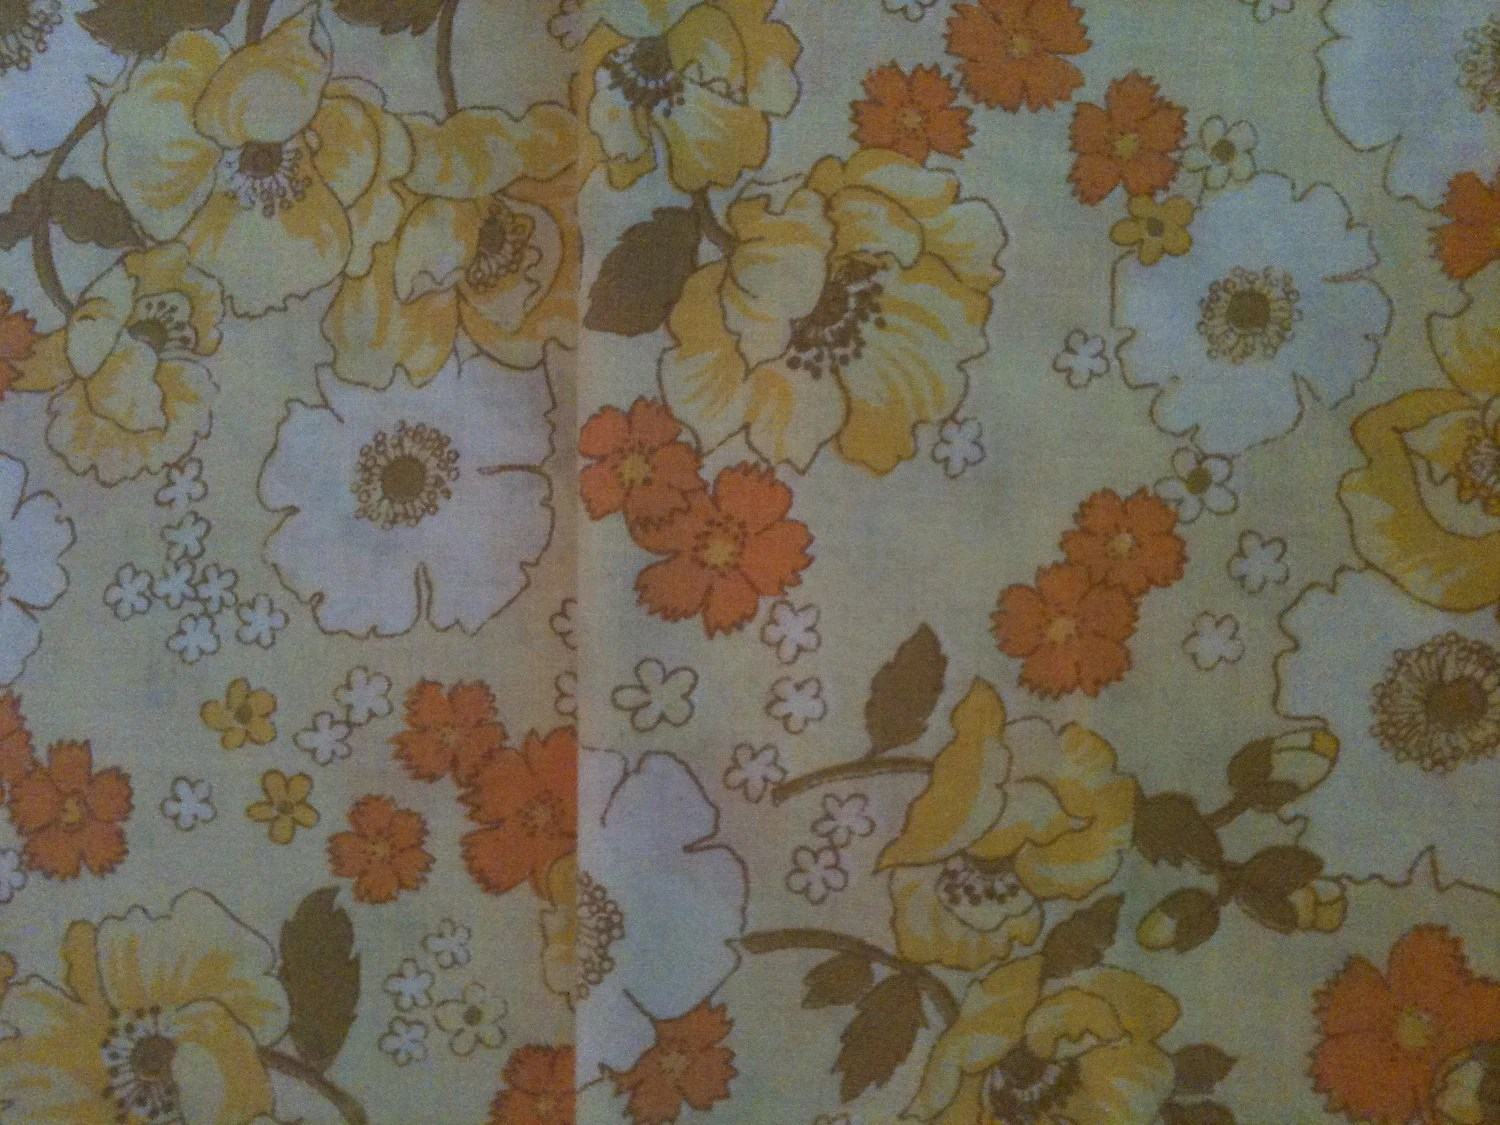 Set Of 2 Vintage Pillow Cases Standard Size or Project/sewing material retro